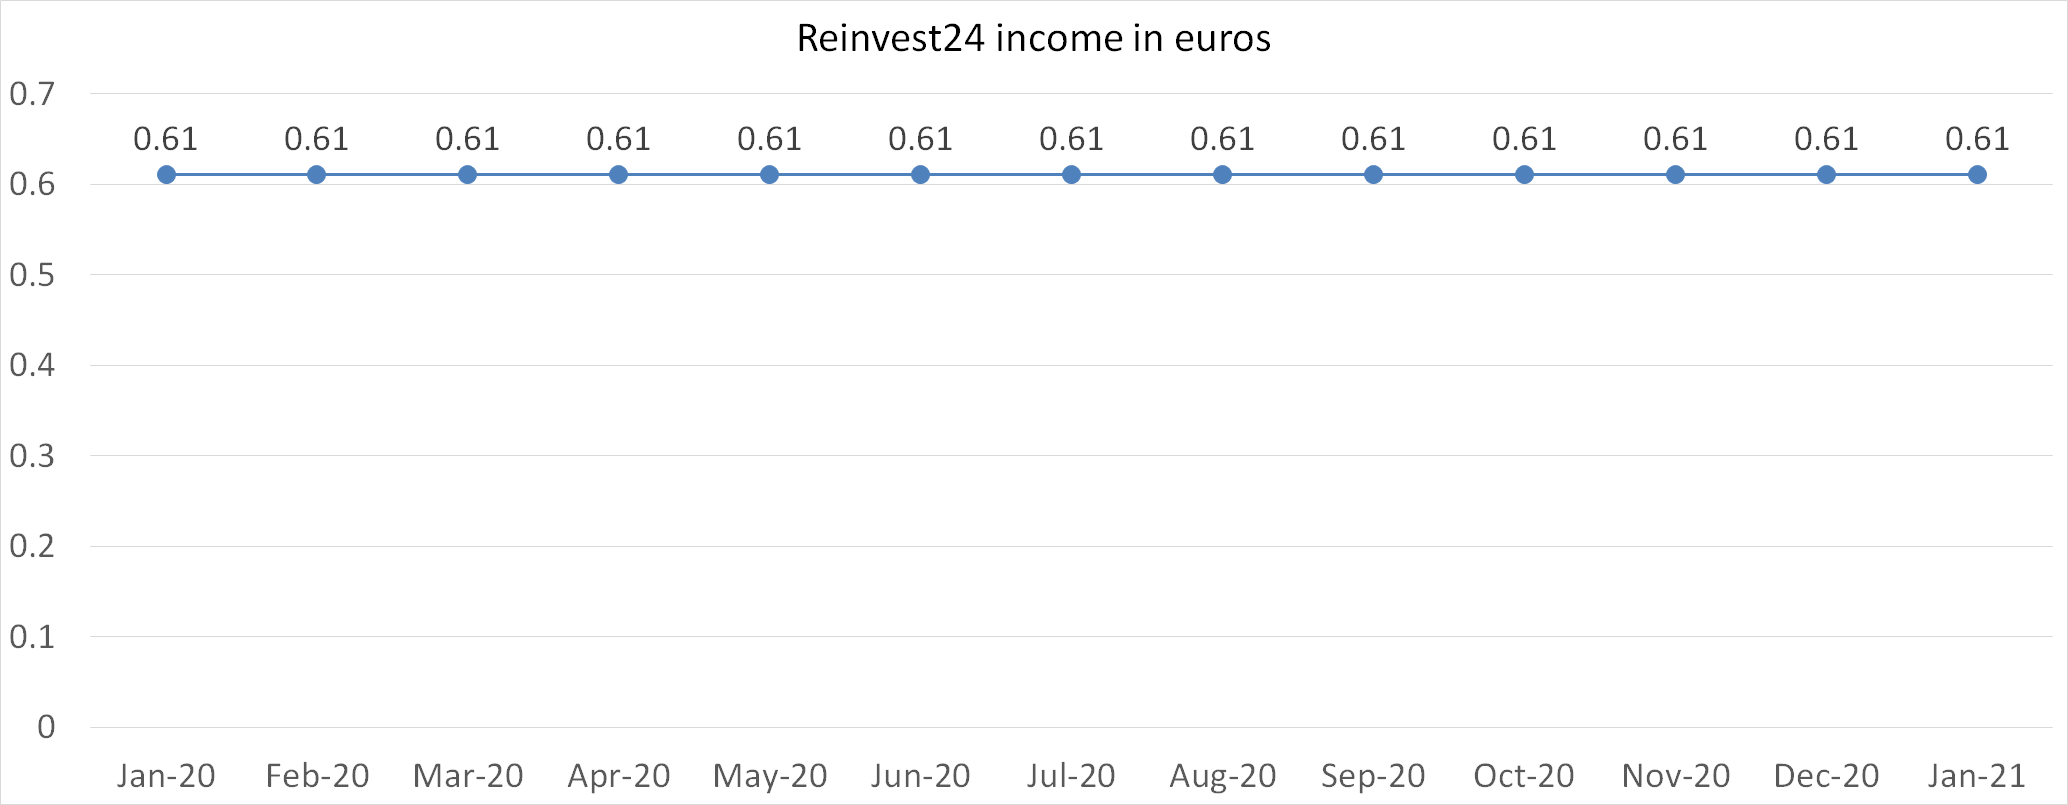 Reinvest24 income in euros january 2021